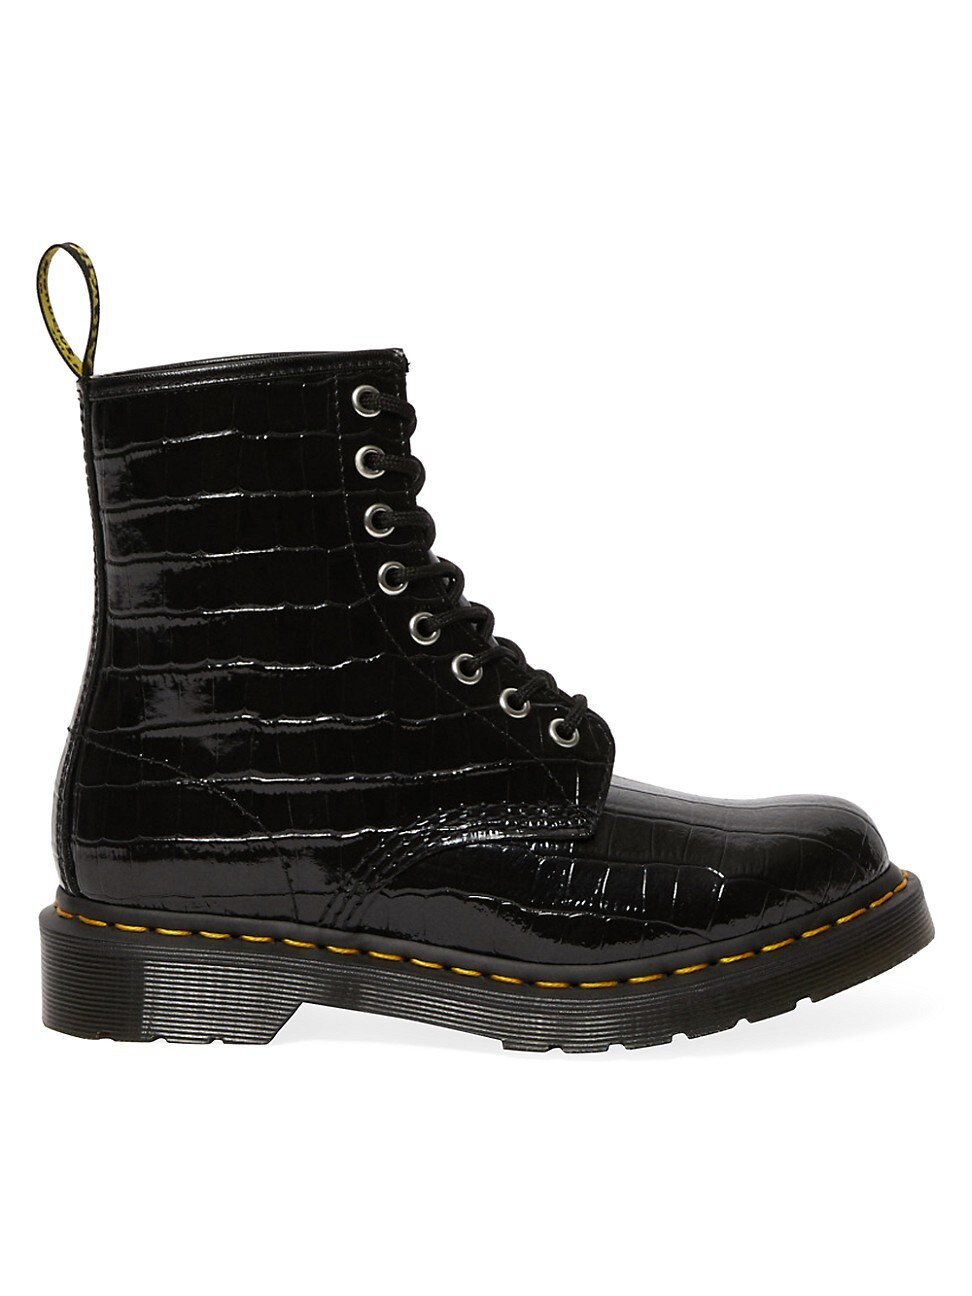 Dr. Martens WOMEN'S 1460 CROC-EMBOSSED PATENT LEATHER COMBAT BOOTS